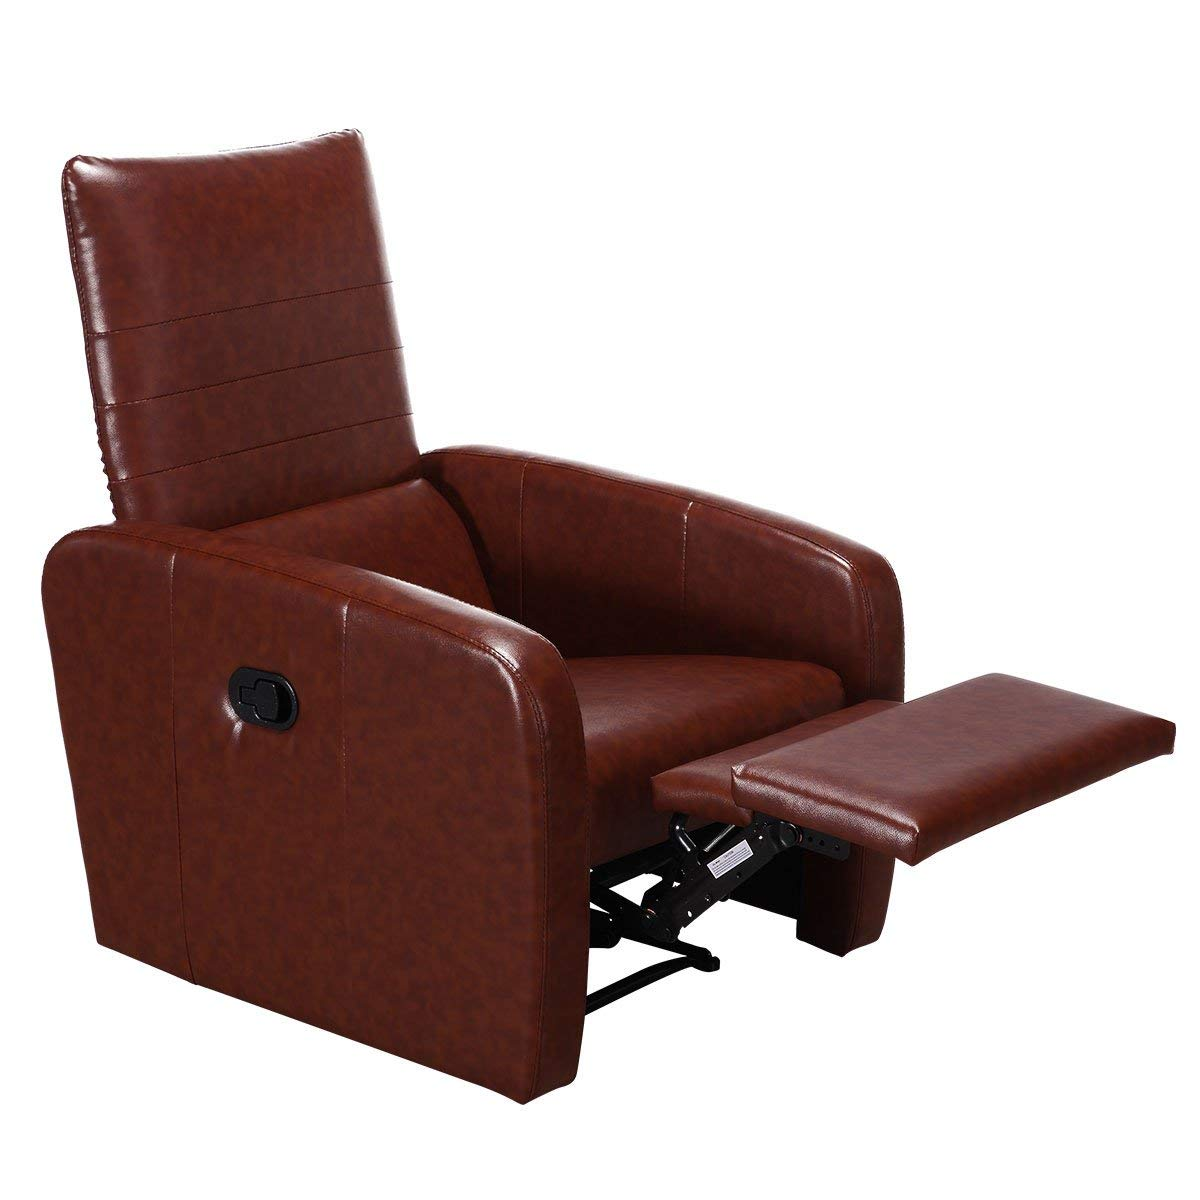 Giantex Manual Recliner Chair Home Theater Living Room Leather Bonded Accent Furniture w/Ergonomic Foldable Back Stretching Legrest Contemporary Lounge Modern Deluxe Reclining Sofa Chair, Brown